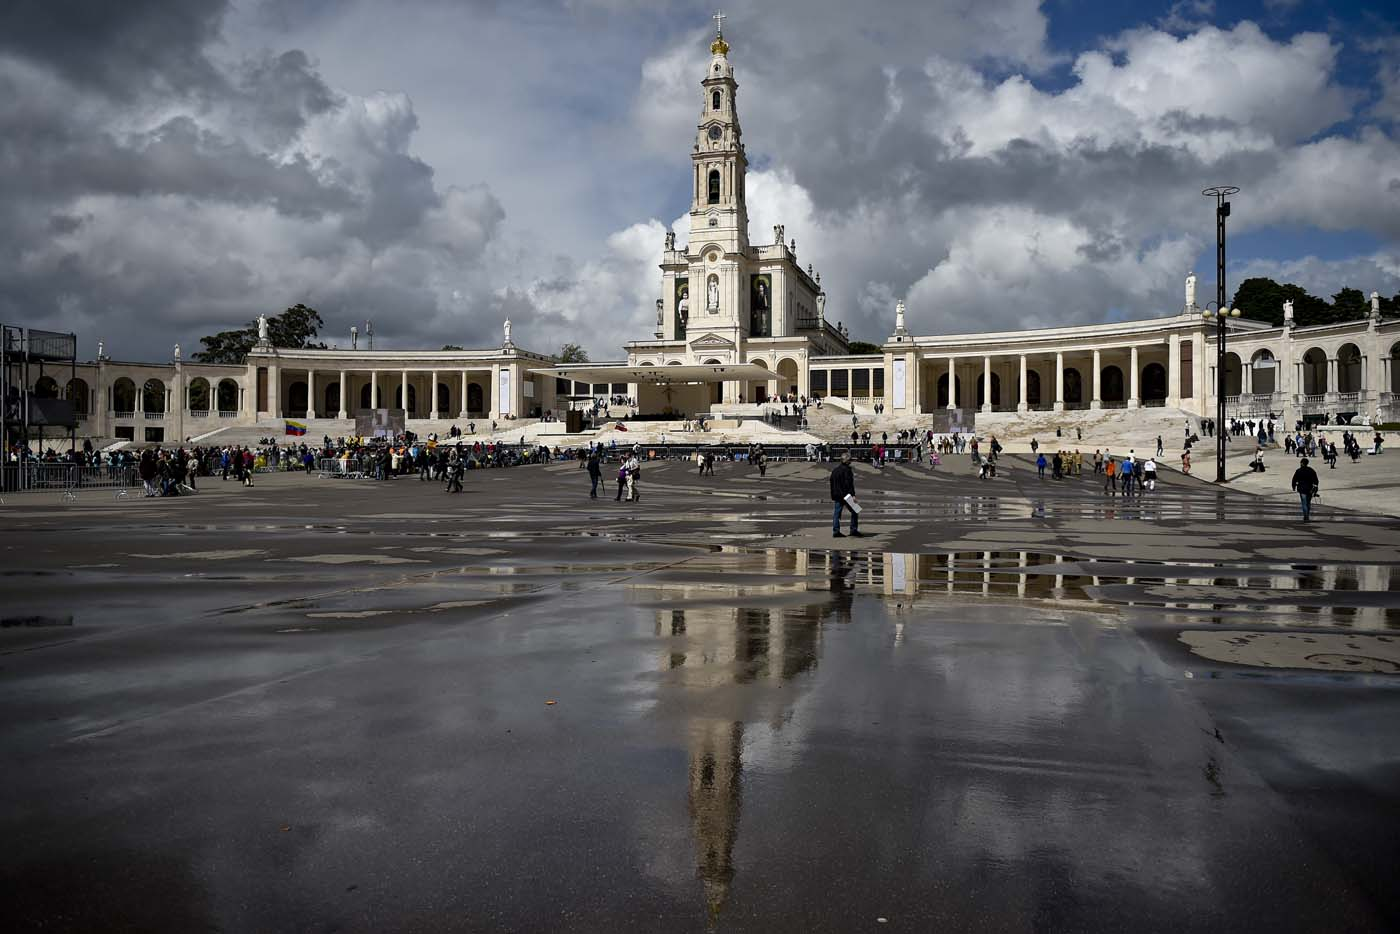 """Nossa Senhora do Rosario de Fatima"" basilica reflects on the wet ground at Fatima shrine, central Portugal, on May 11, 2017.  Two of the three child shepherds who reported apparitions of the Virgin Mary in Fatima, Portugal, one century ago, will be declared saints on May 13, 2017 by Pope Francis. The canonisation of Jacinta and Francisco Marto will take place during the Argentinian pontiff's visit to a Catholic shrine visited by millions of pilgrims every year. / AFP PHOTO / PATRICIA DE MELO MOREIRA"